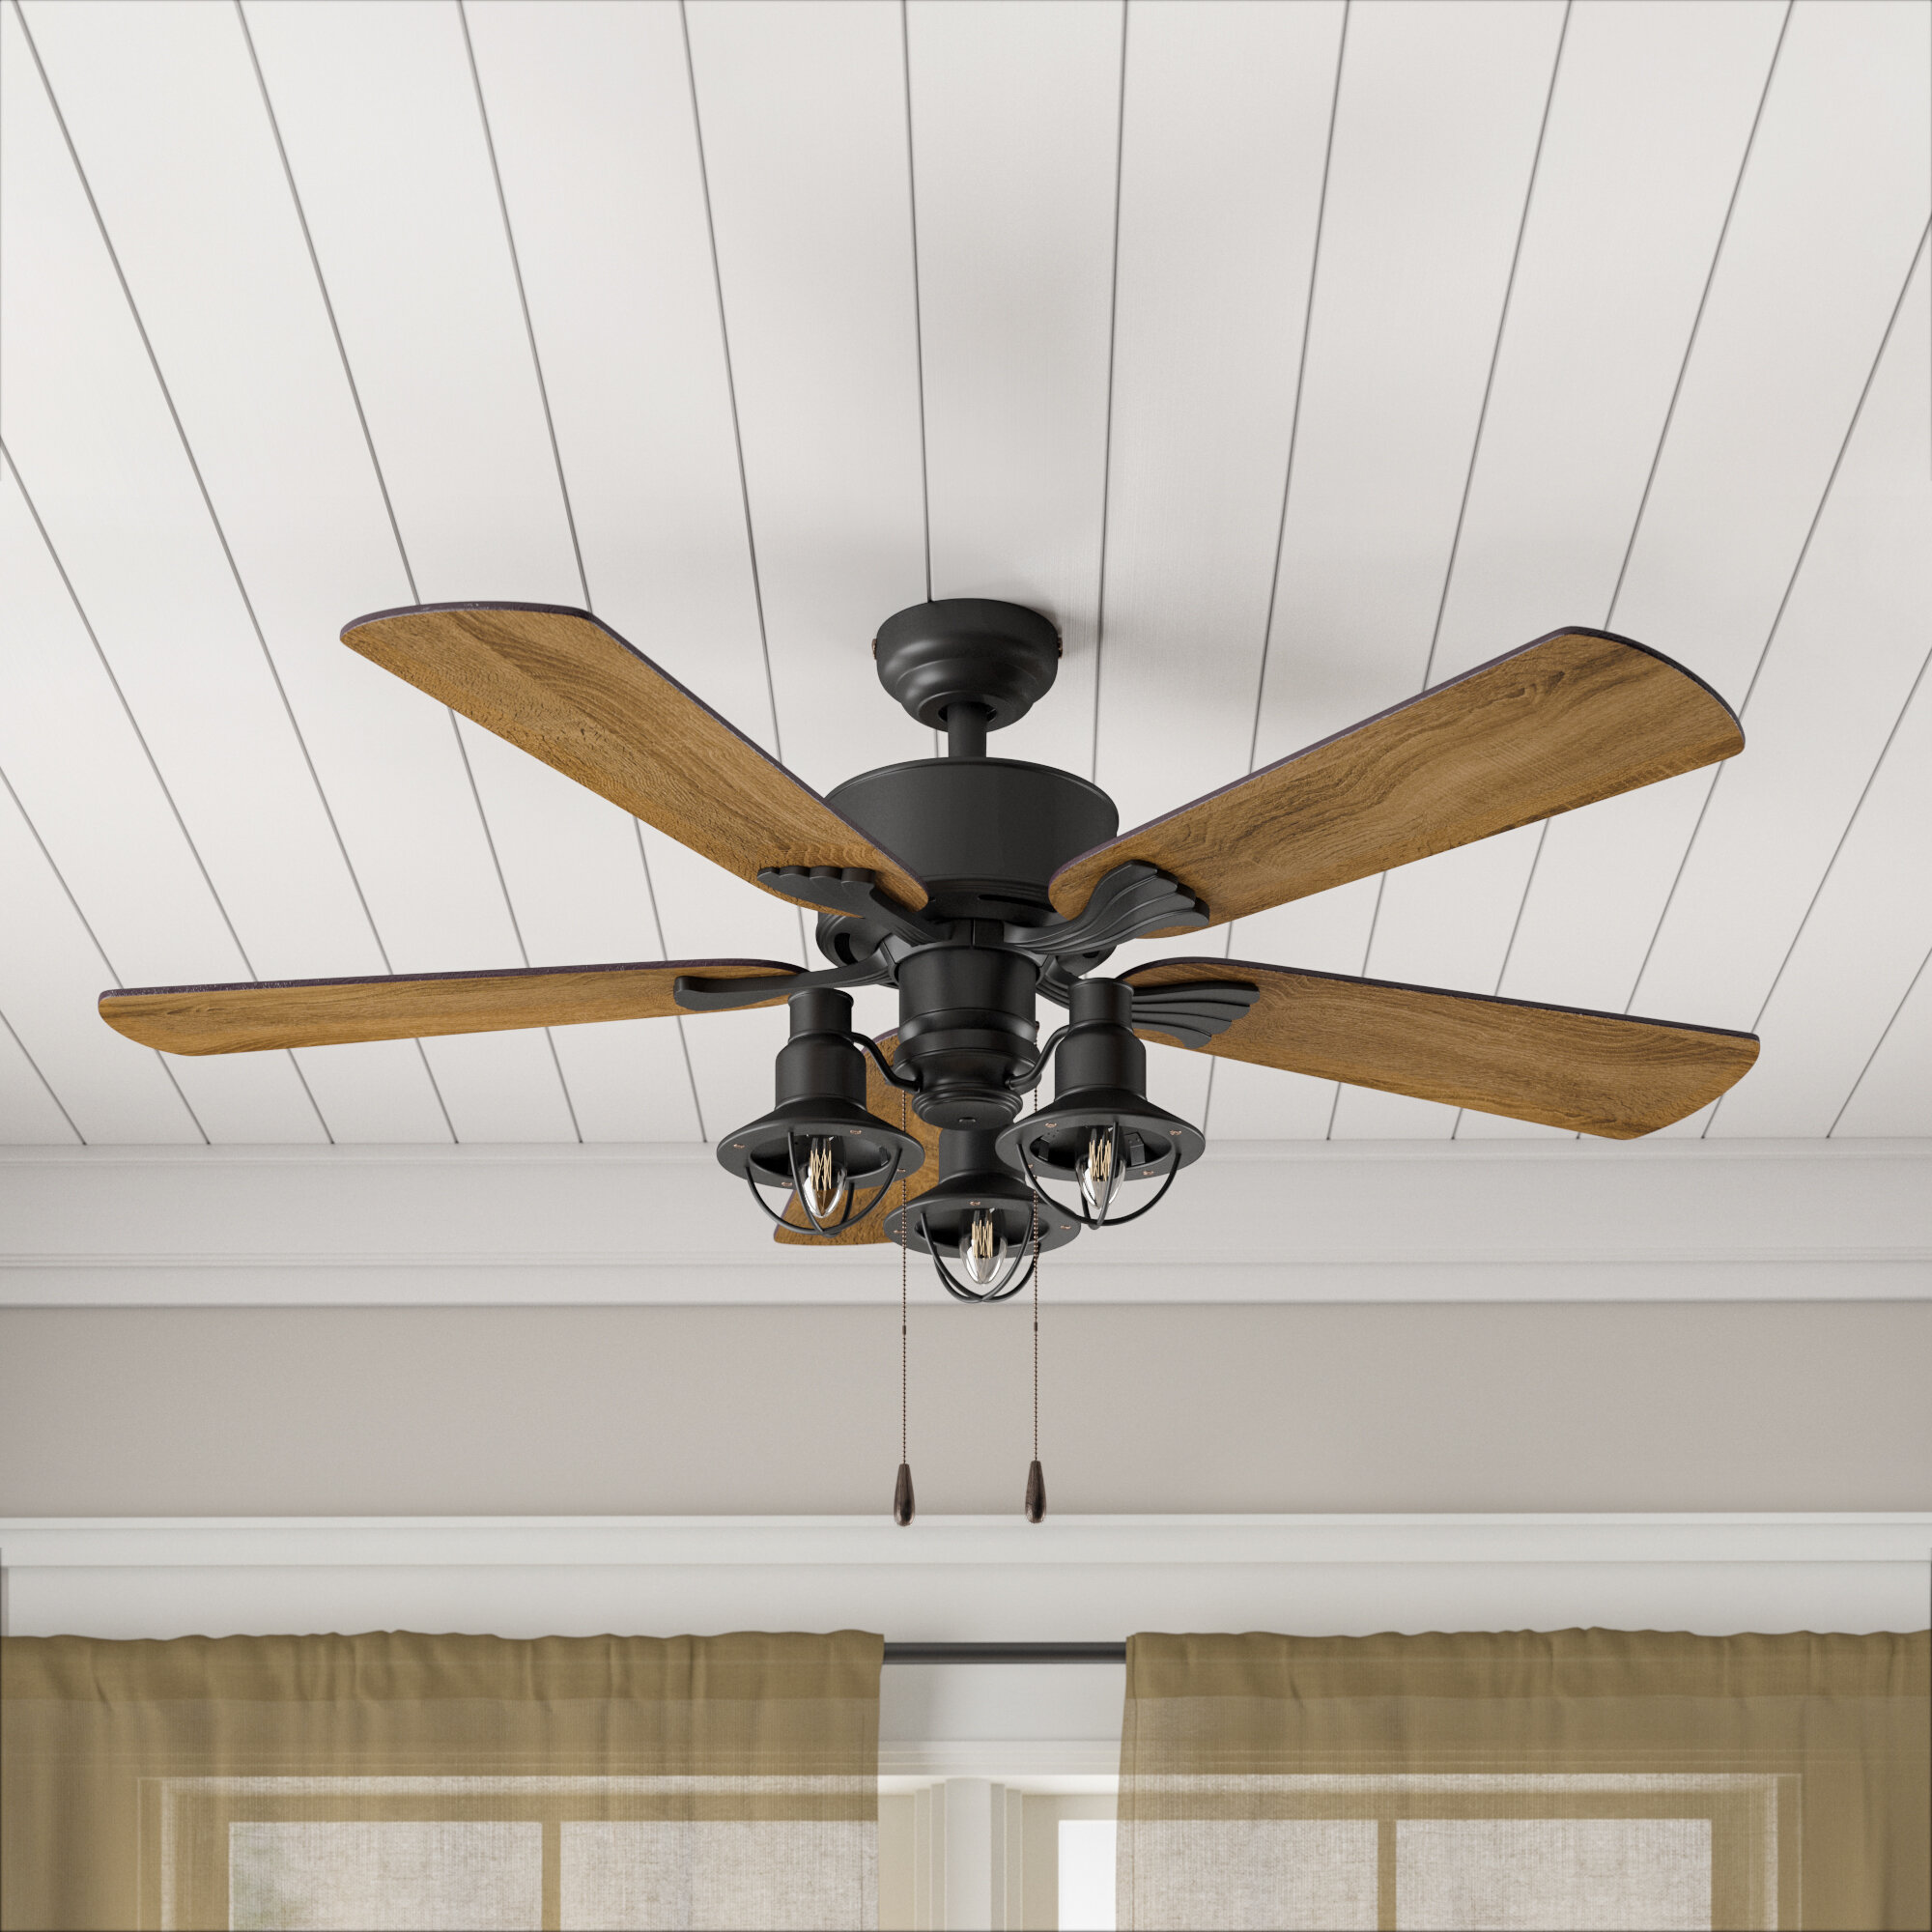 Birch Lane Heritage 52 5 Blade Standard Ceiling Fan With Pull Chain And Light Kit Included Reviews Wayfair